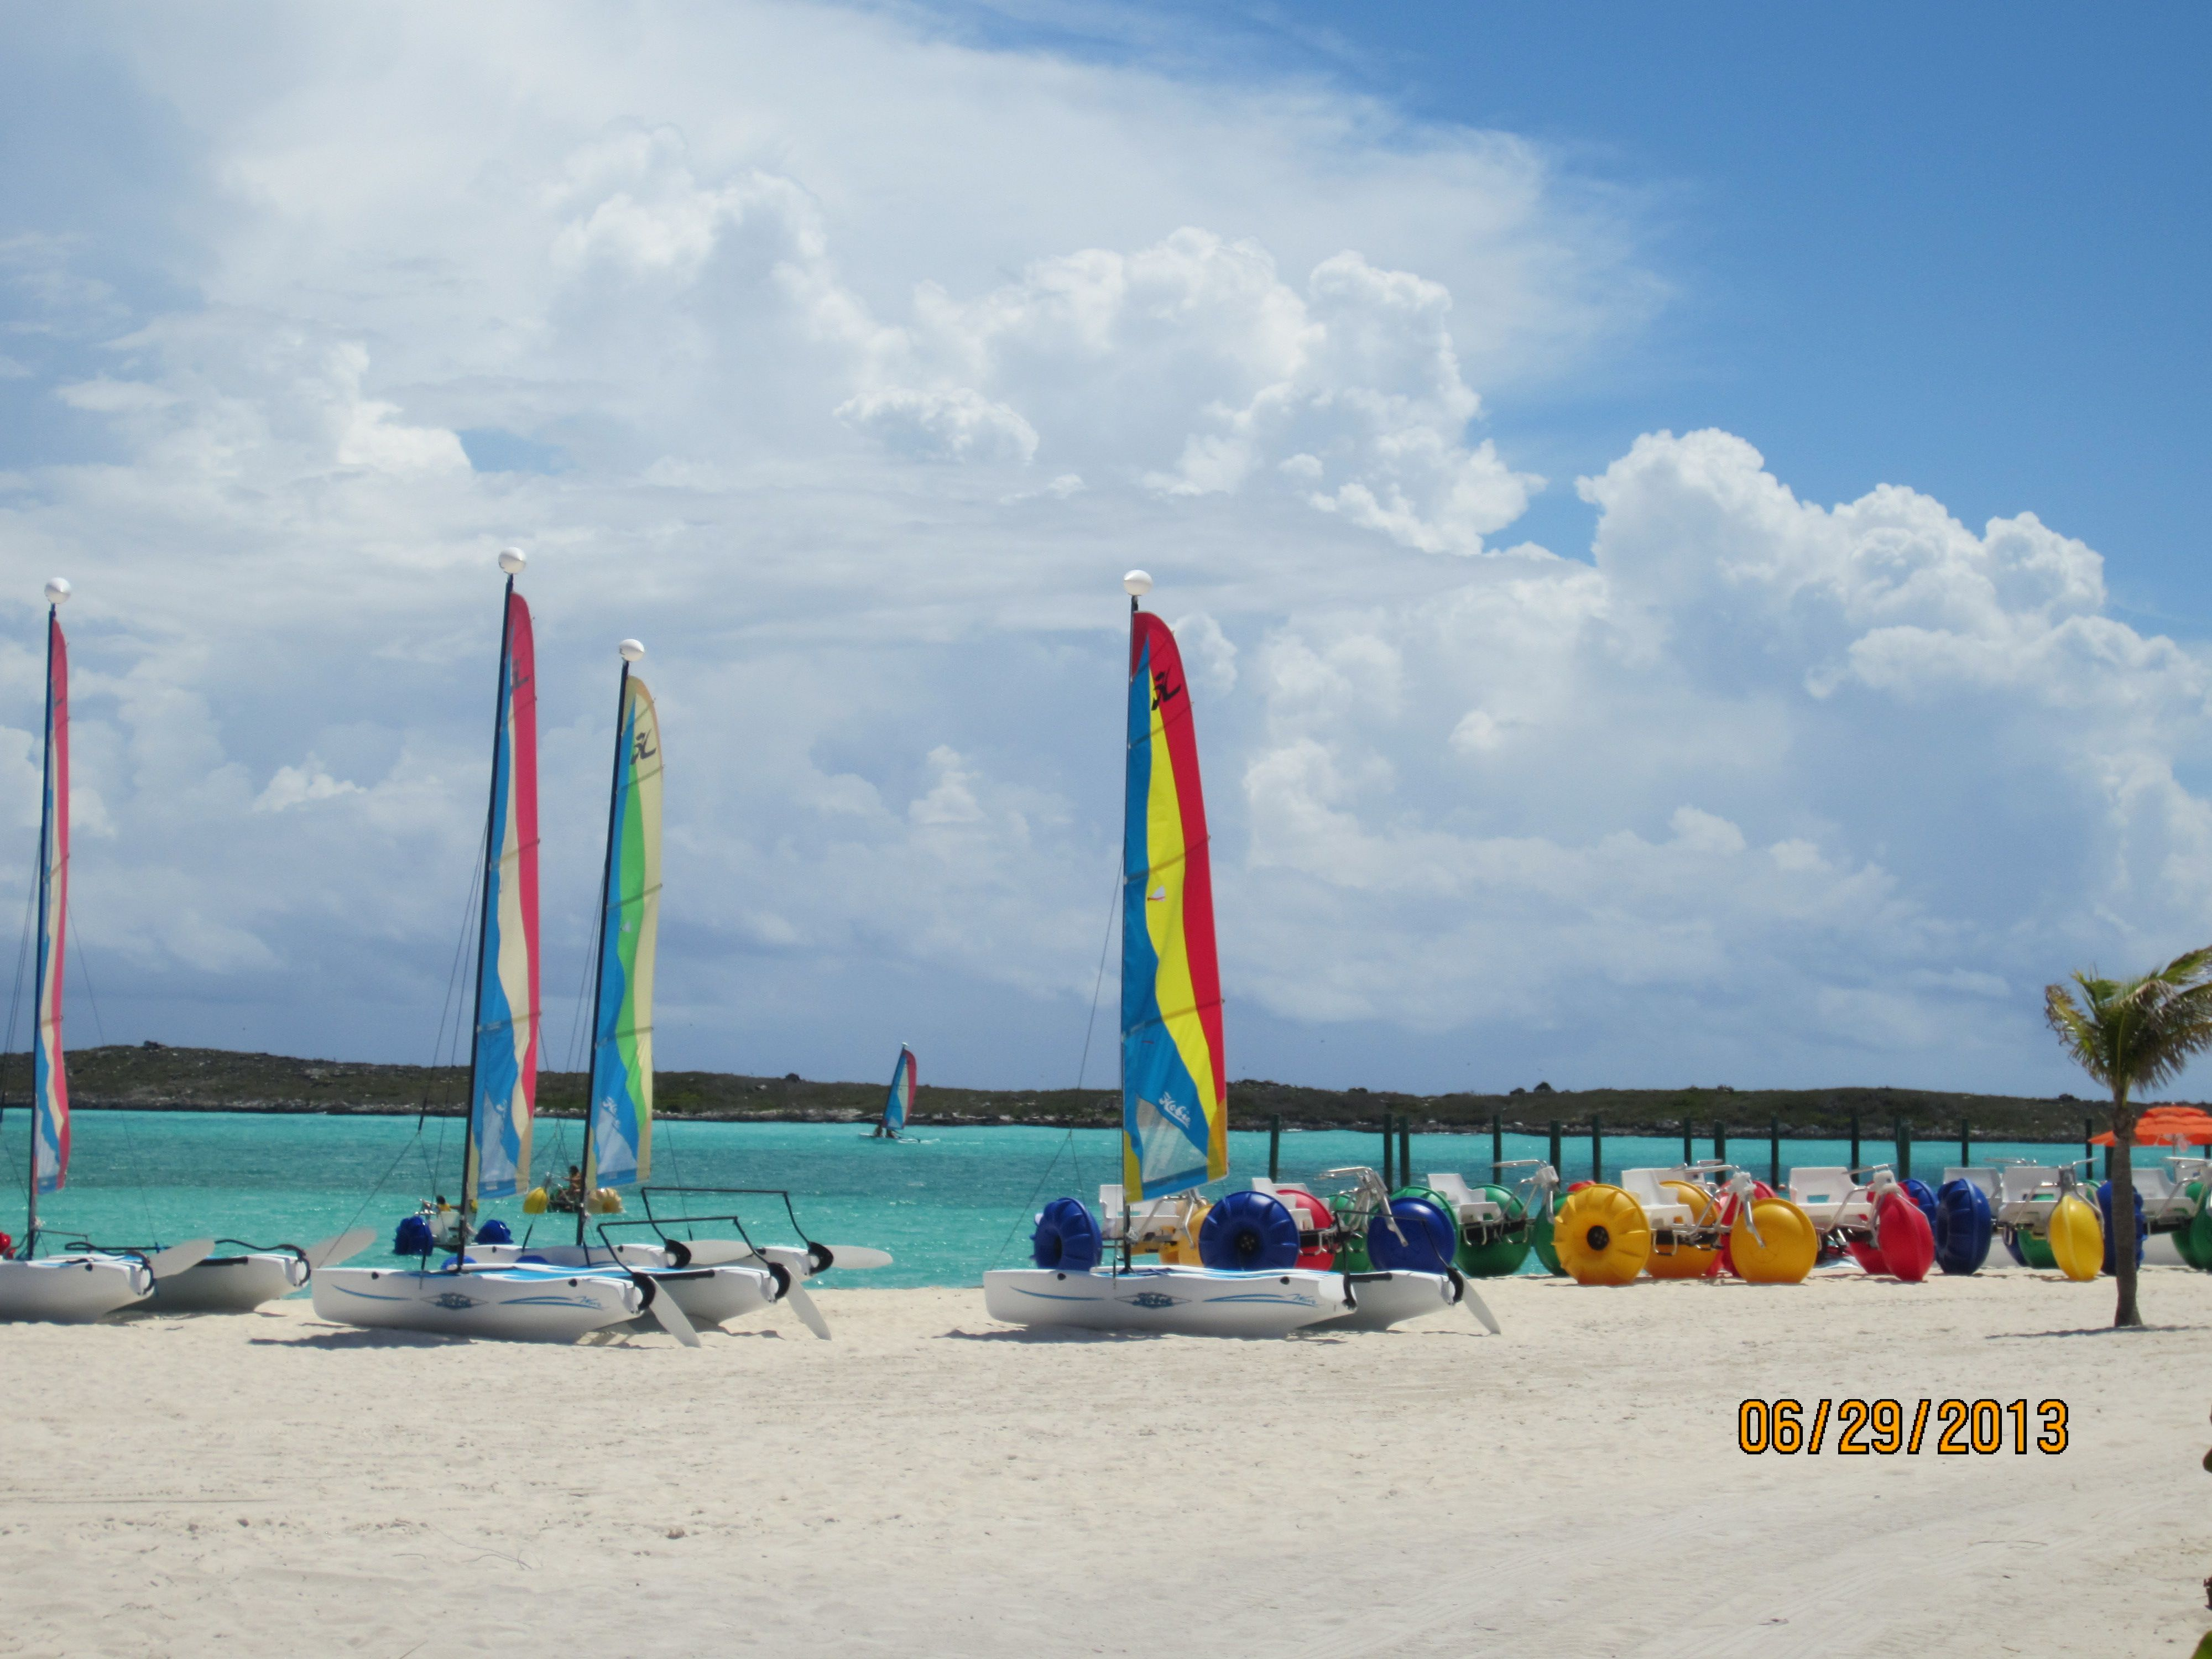 Many activities on beautiful Castaway Cay - Disney's private island